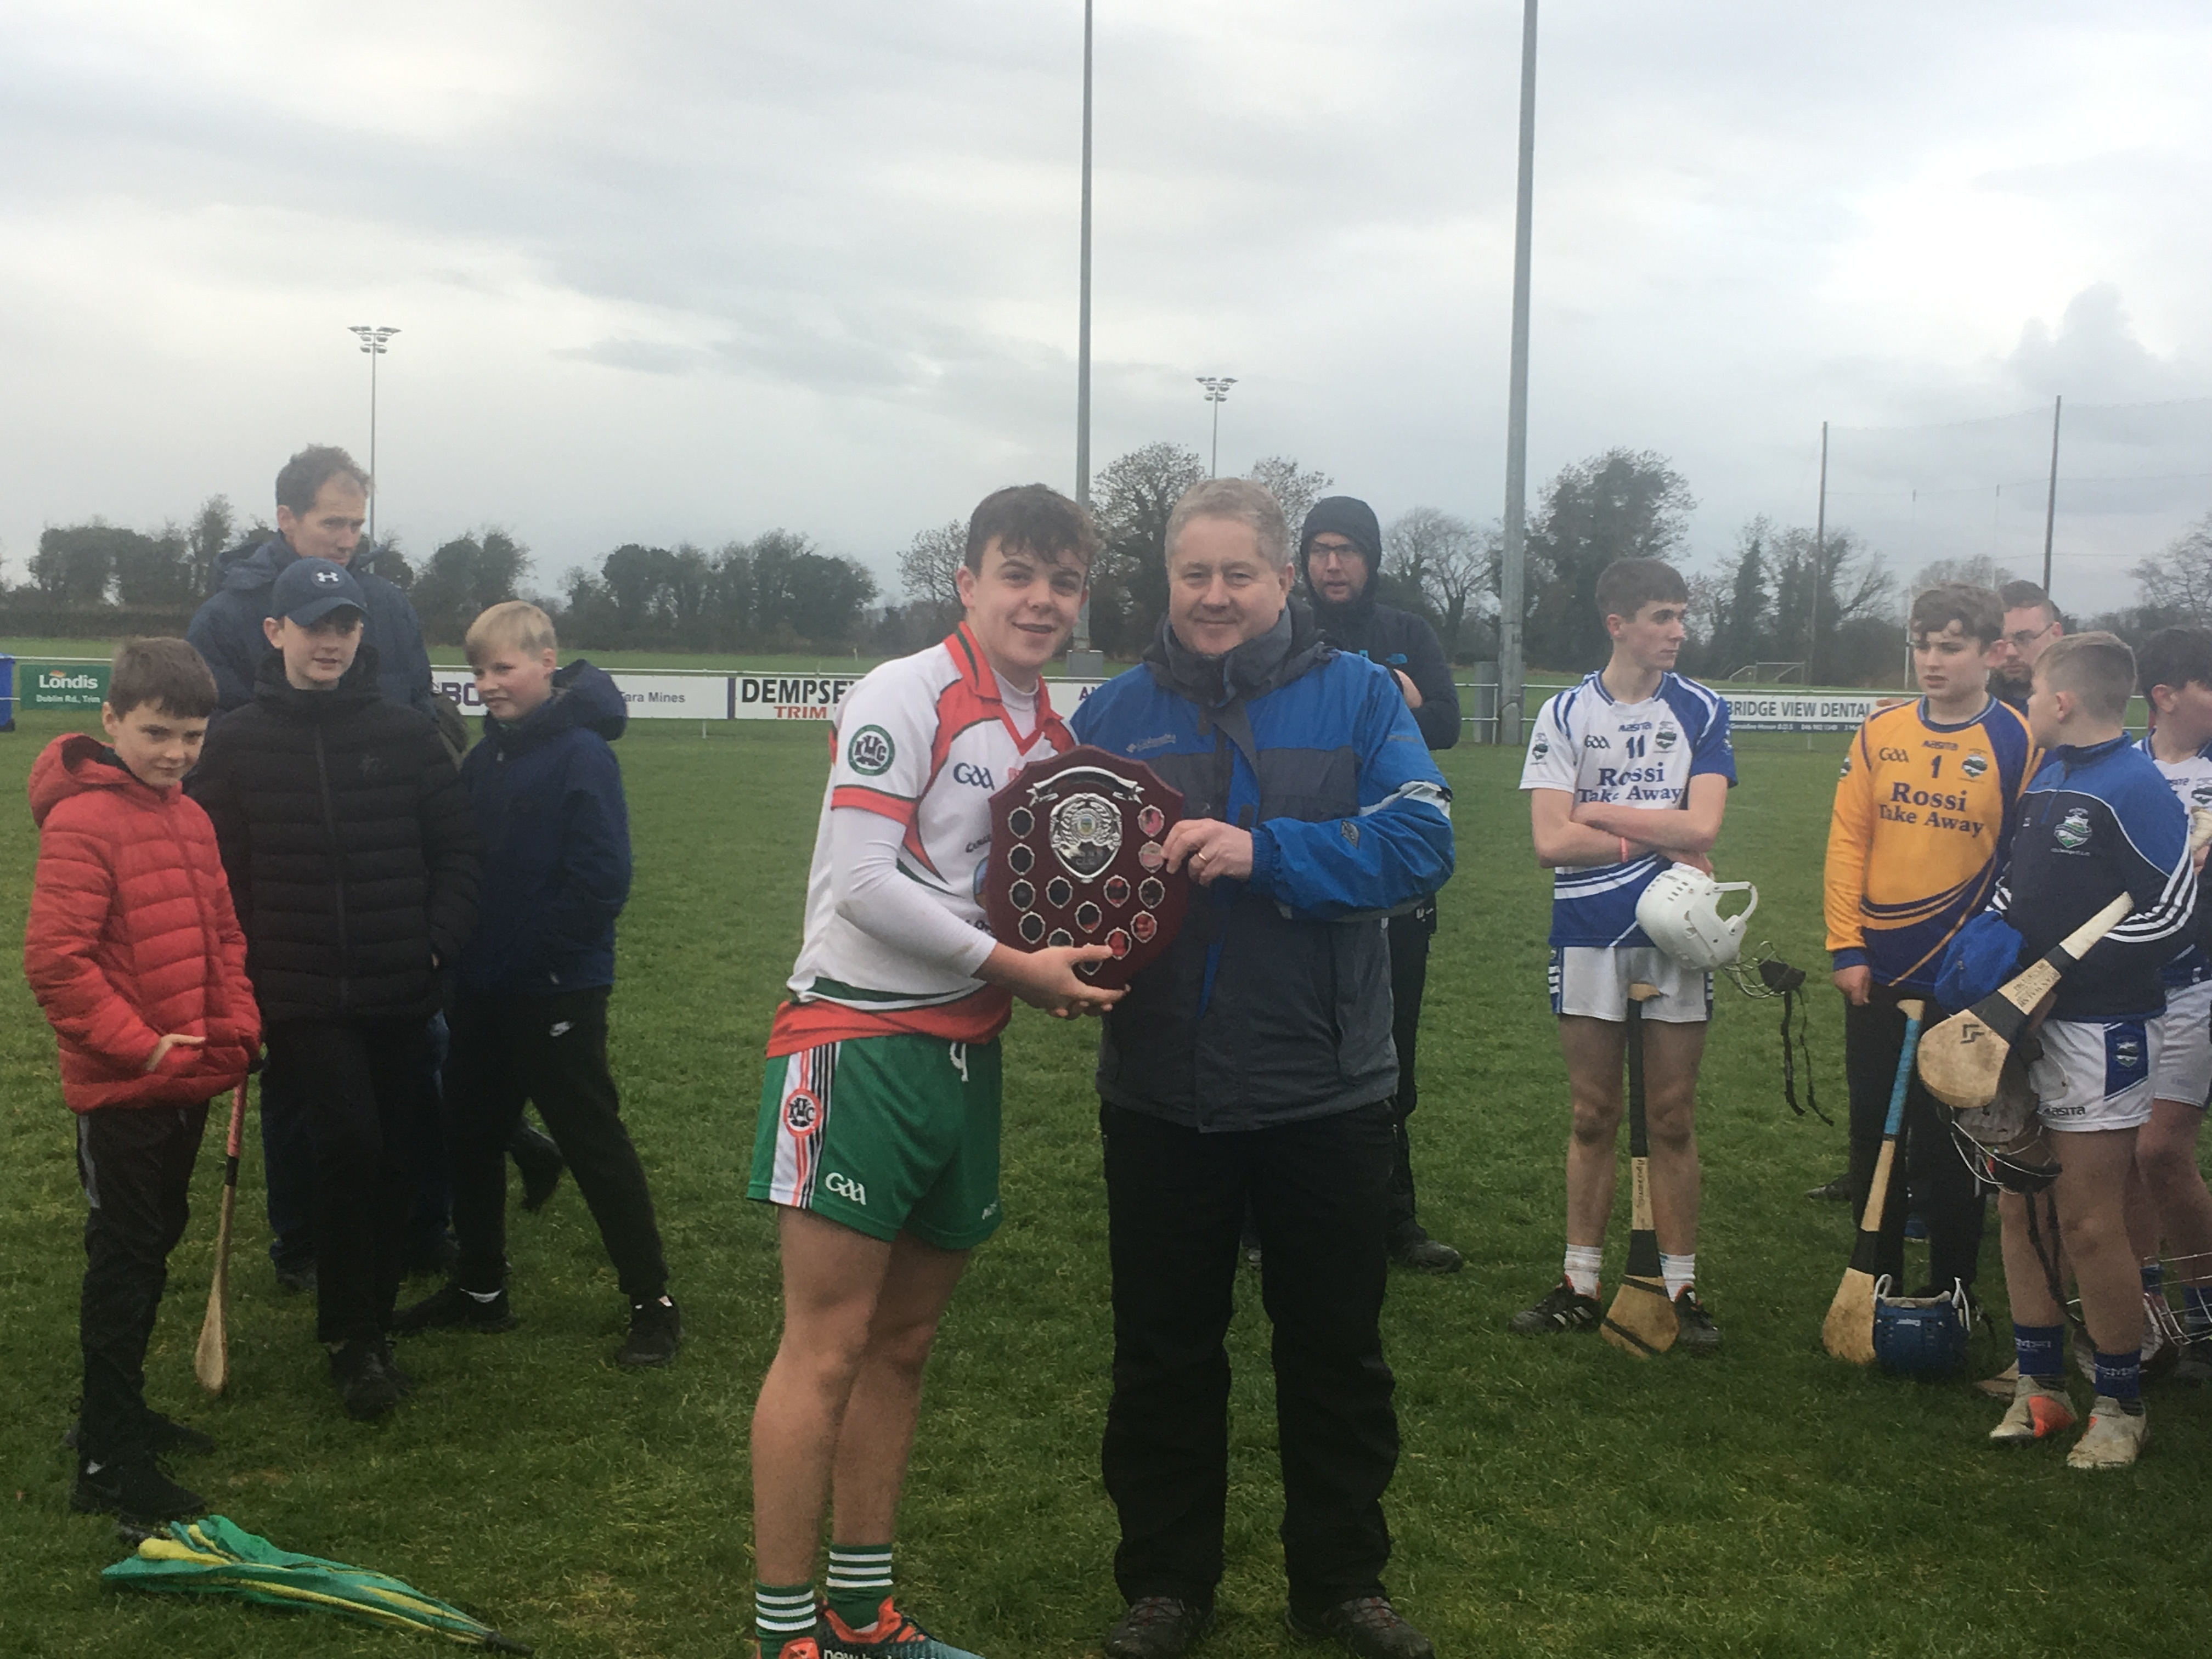 U15 20hurling 20shield 20presentation